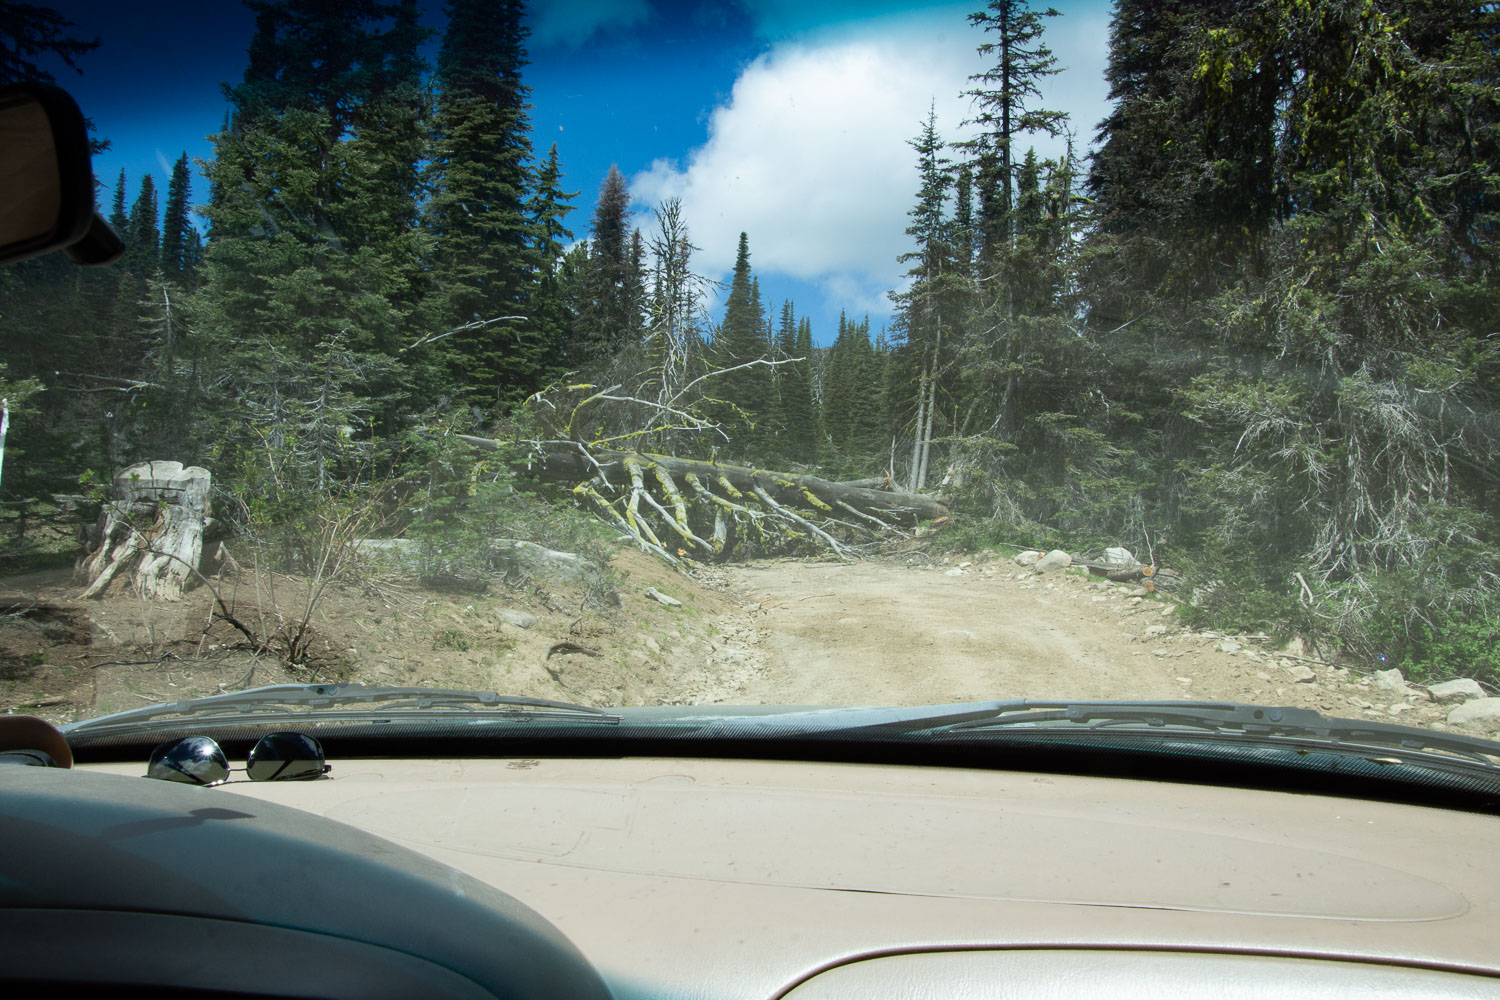 On the road to Brundage Mountain Lookout.